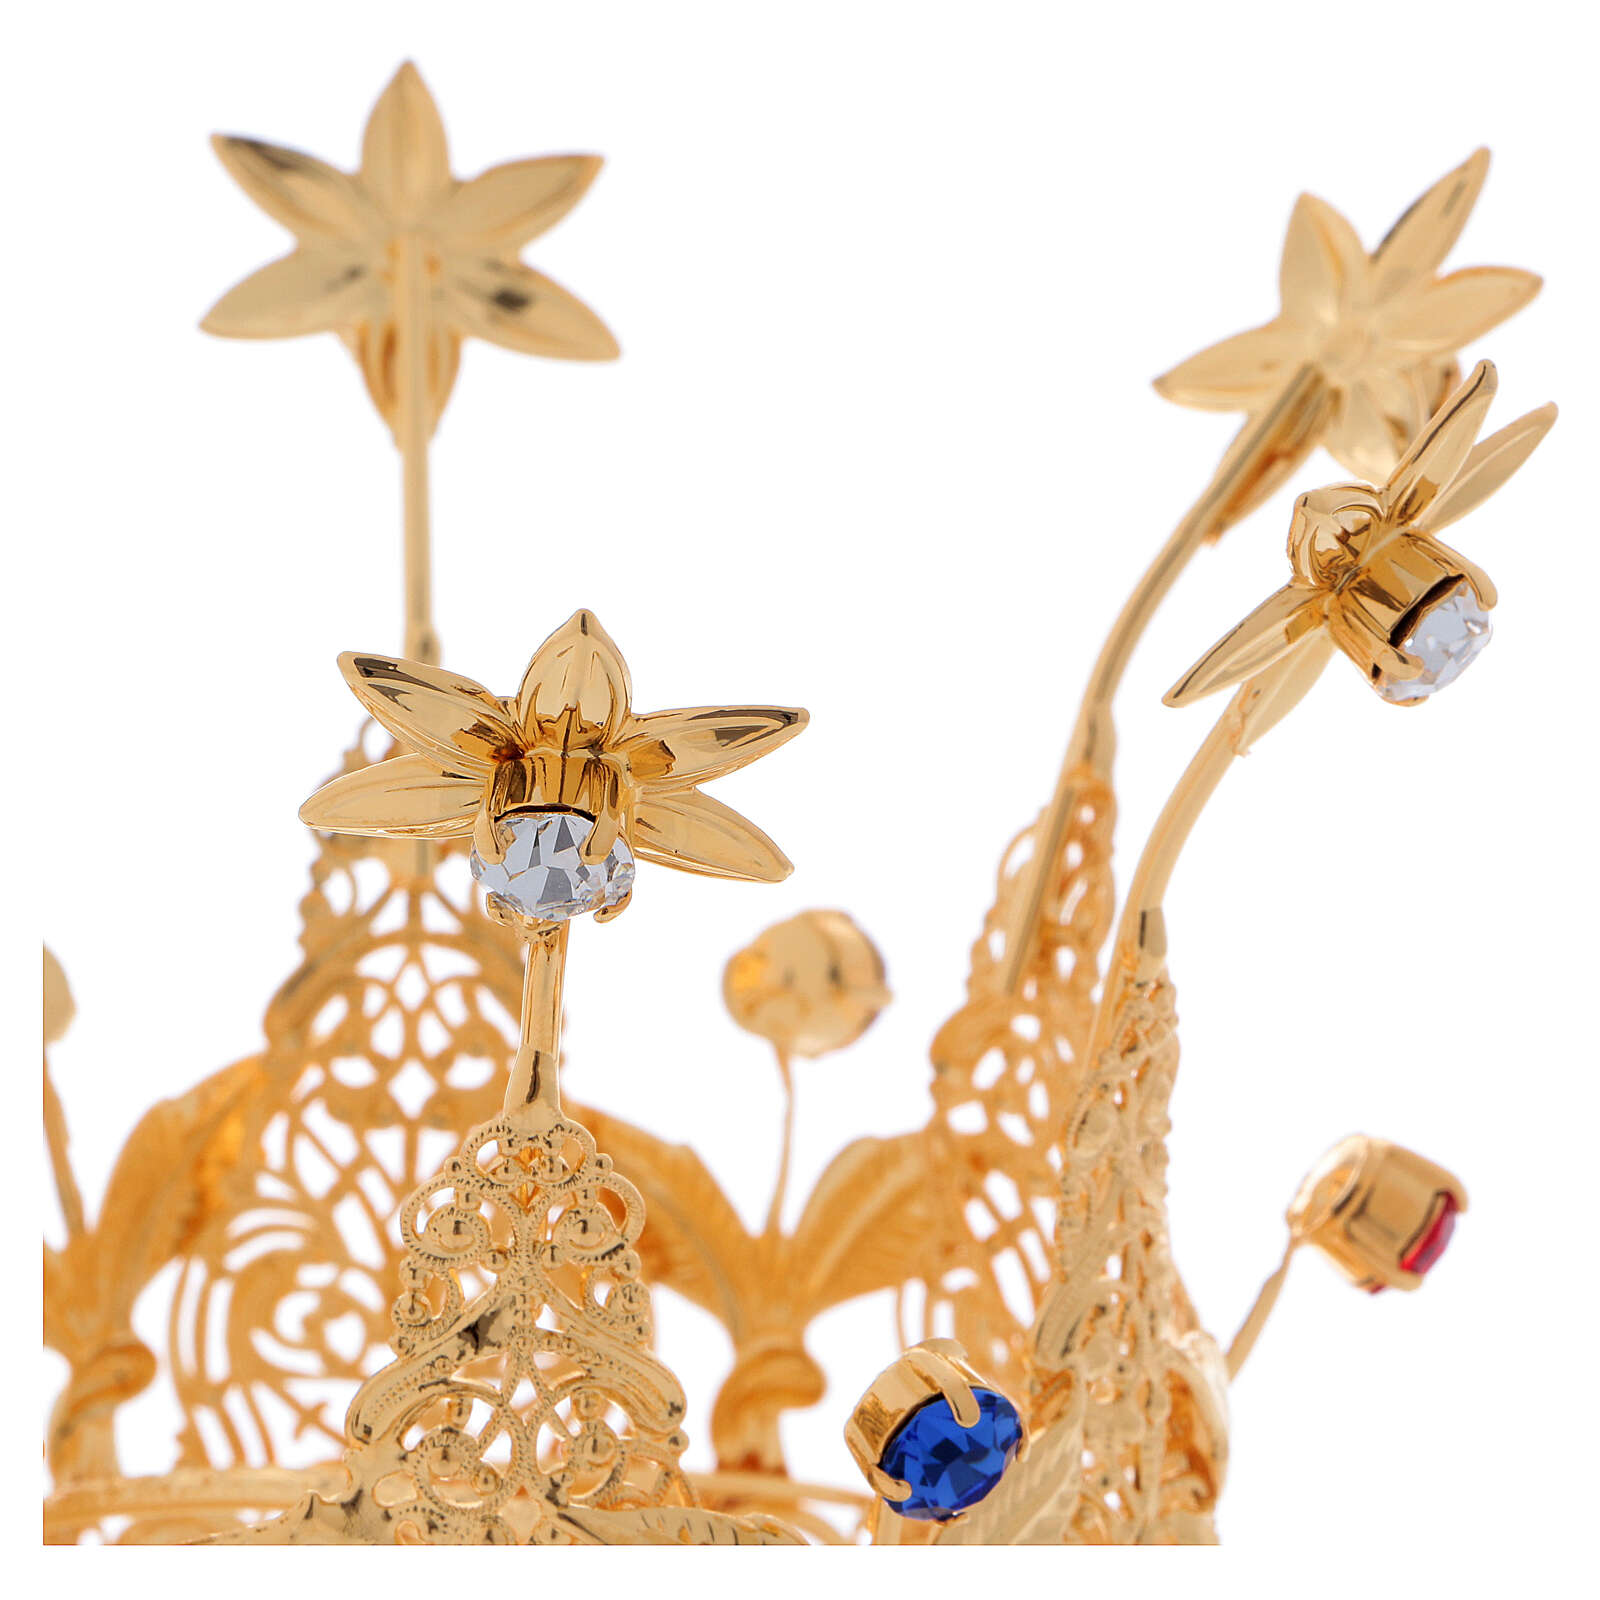 Gold plated royal crown with gems and flowers for statues 3 in diameter 3